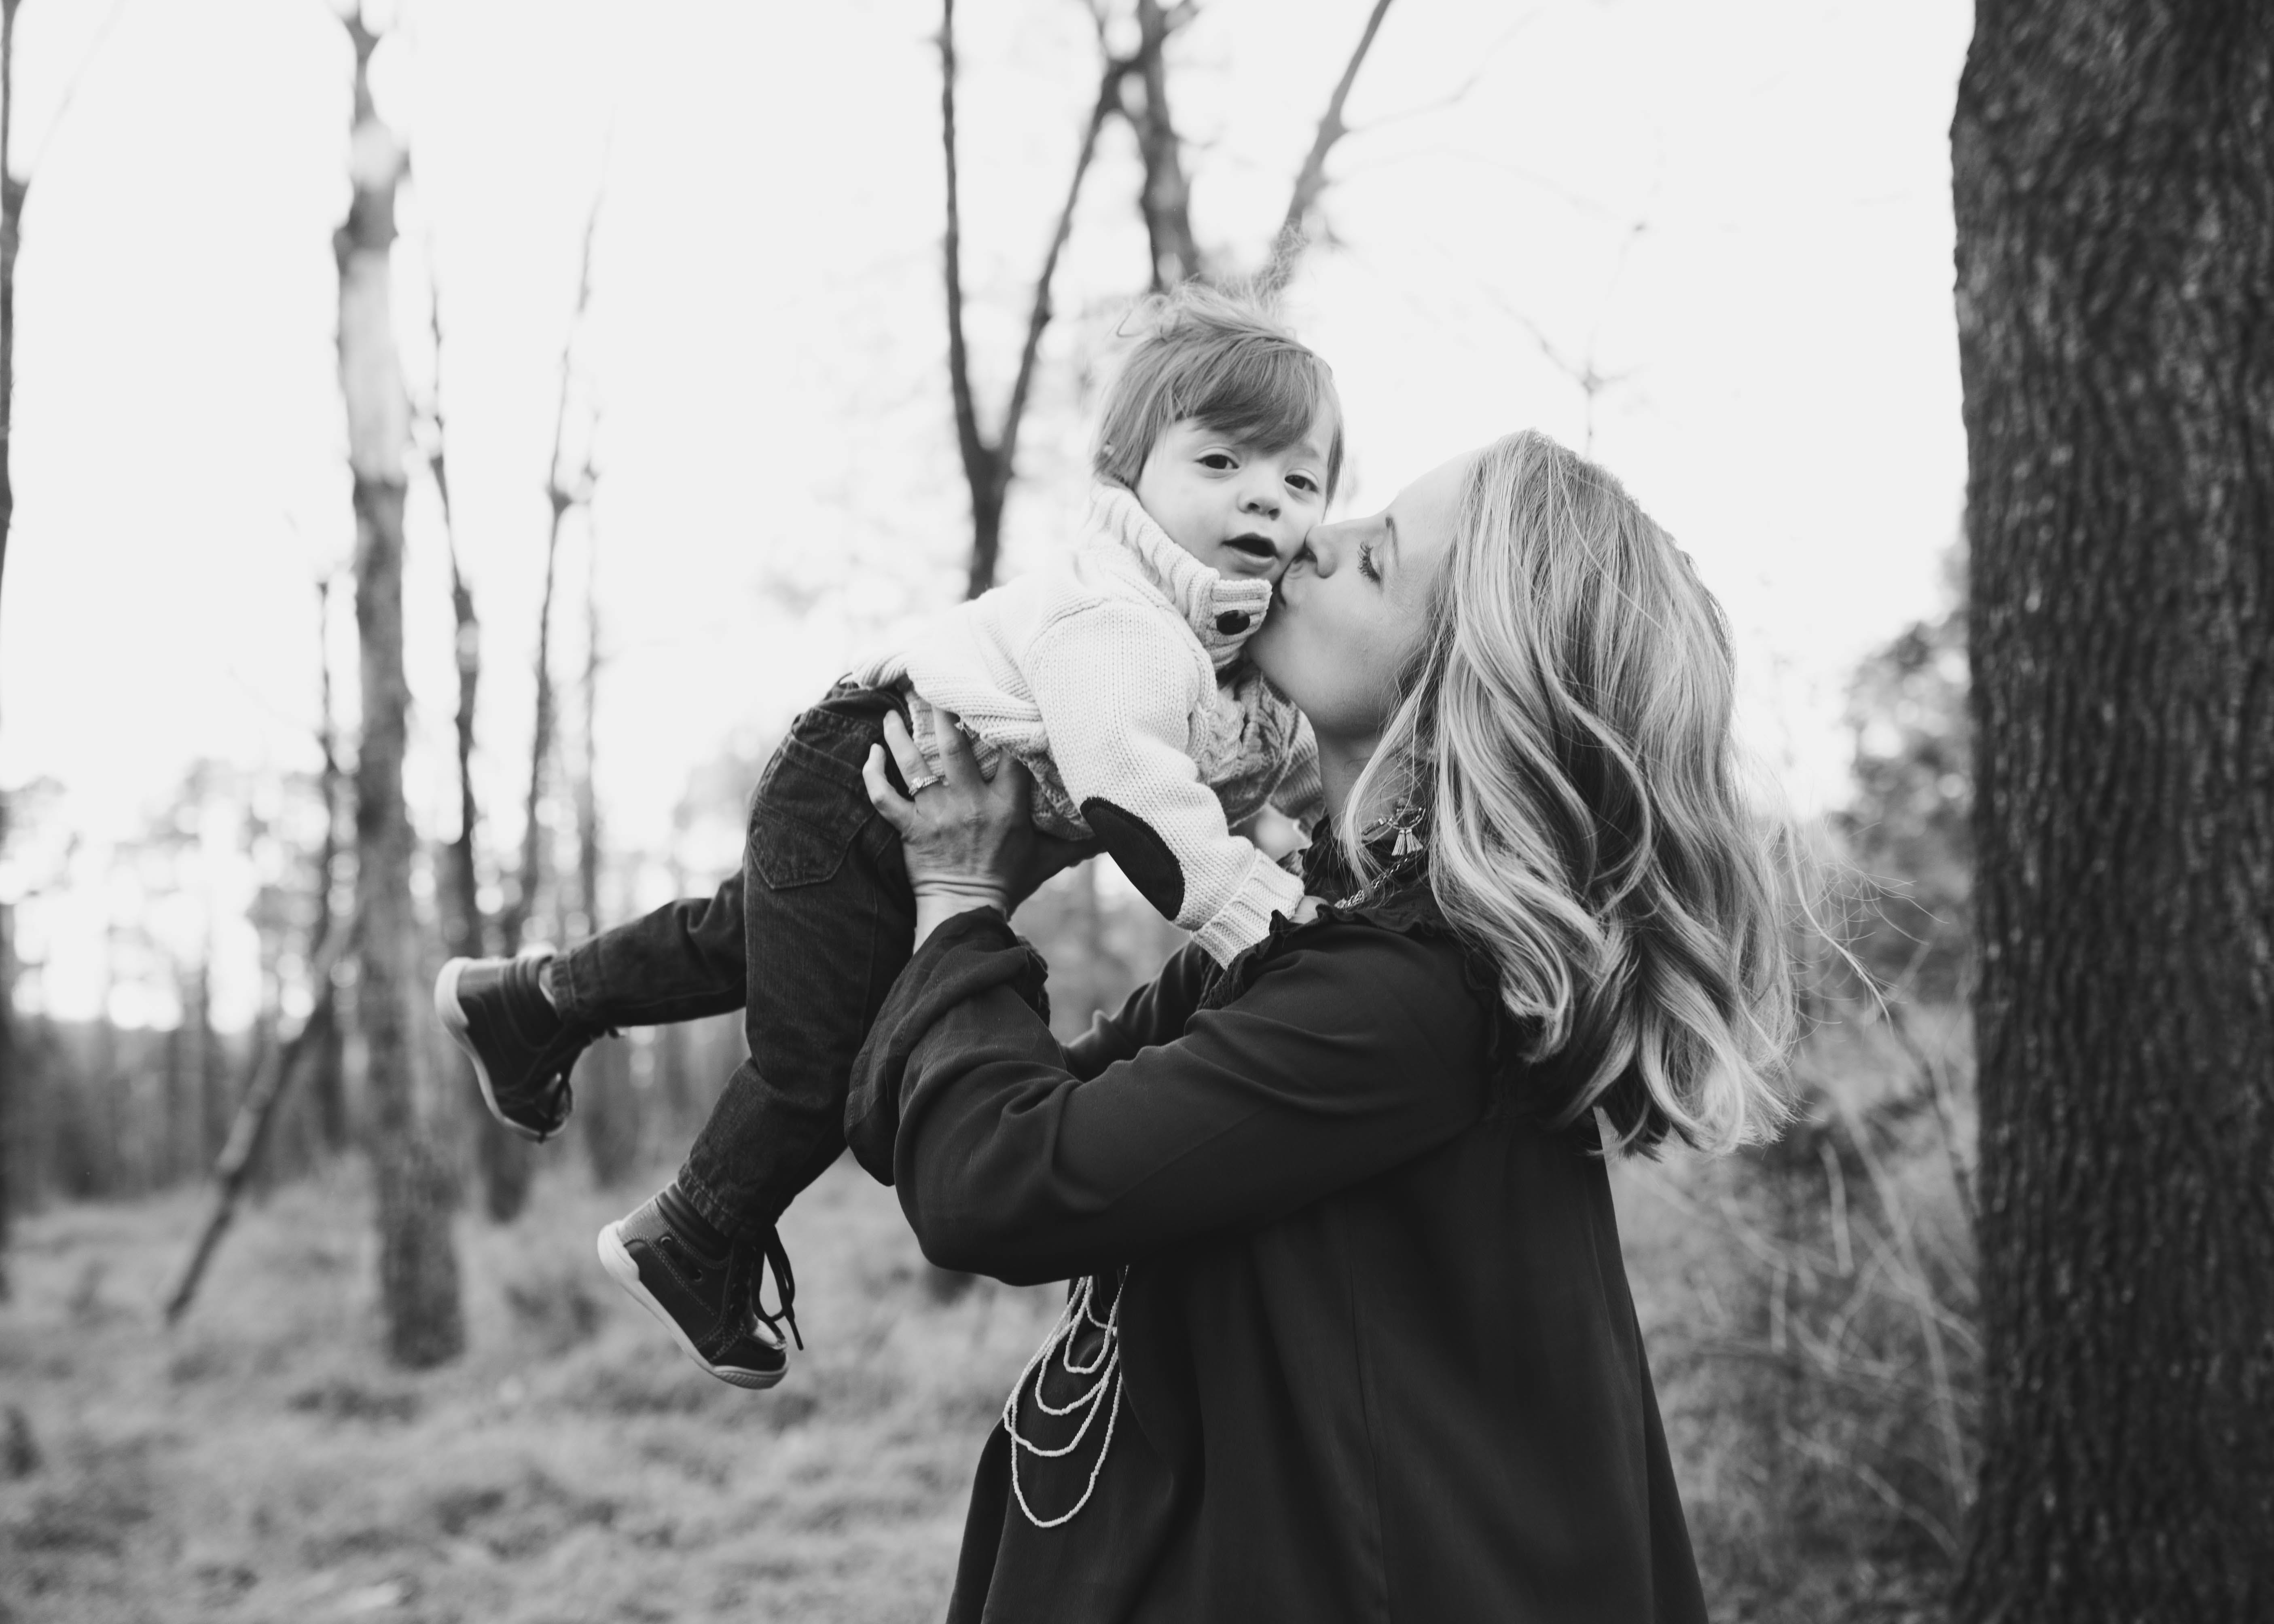 Grayscale Photo Of Woman Kissing Toddler On Cheek